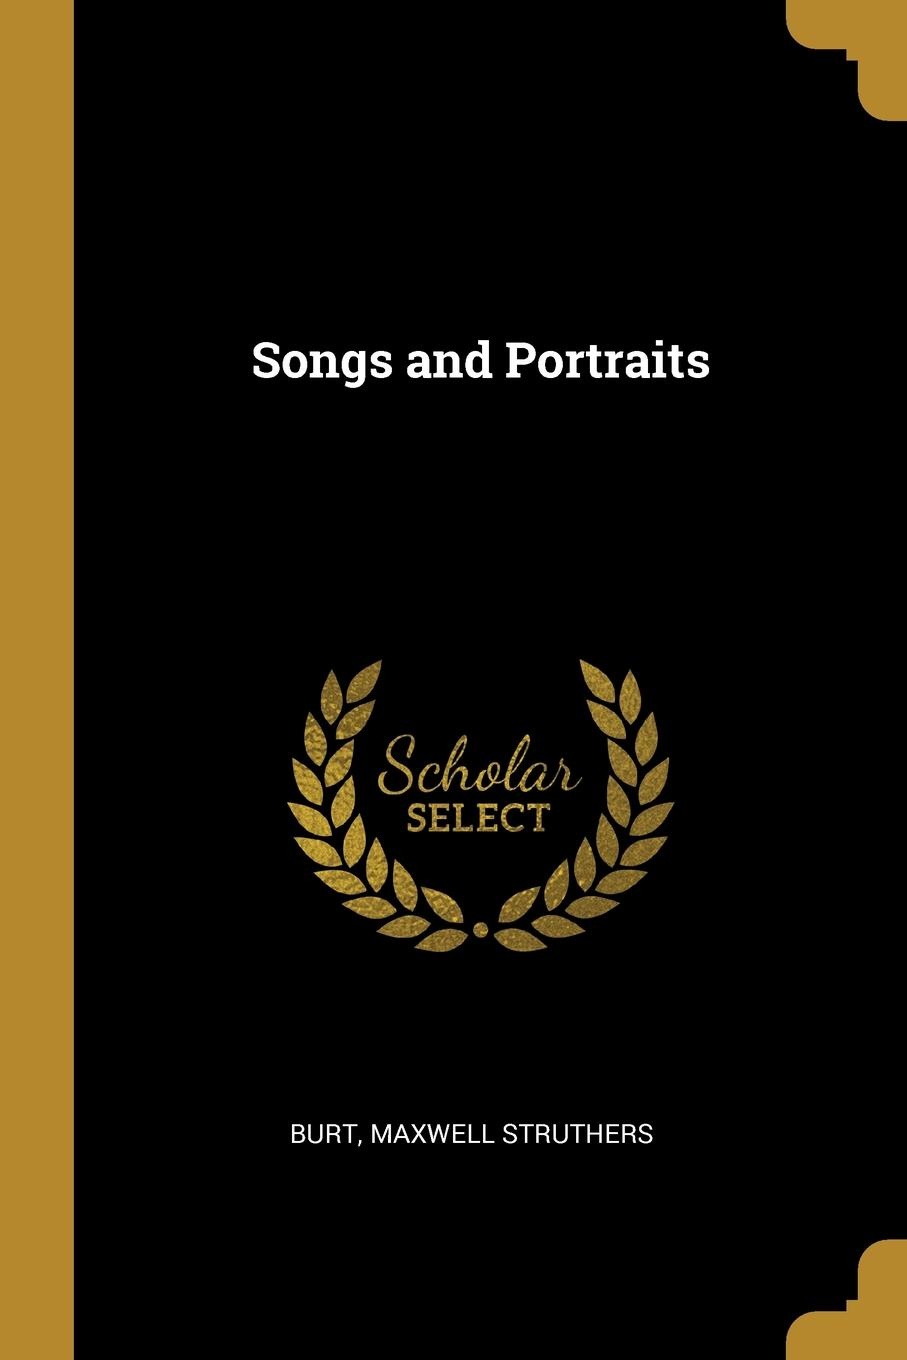 Burt Maxwell Struthers. Songs and Portraits